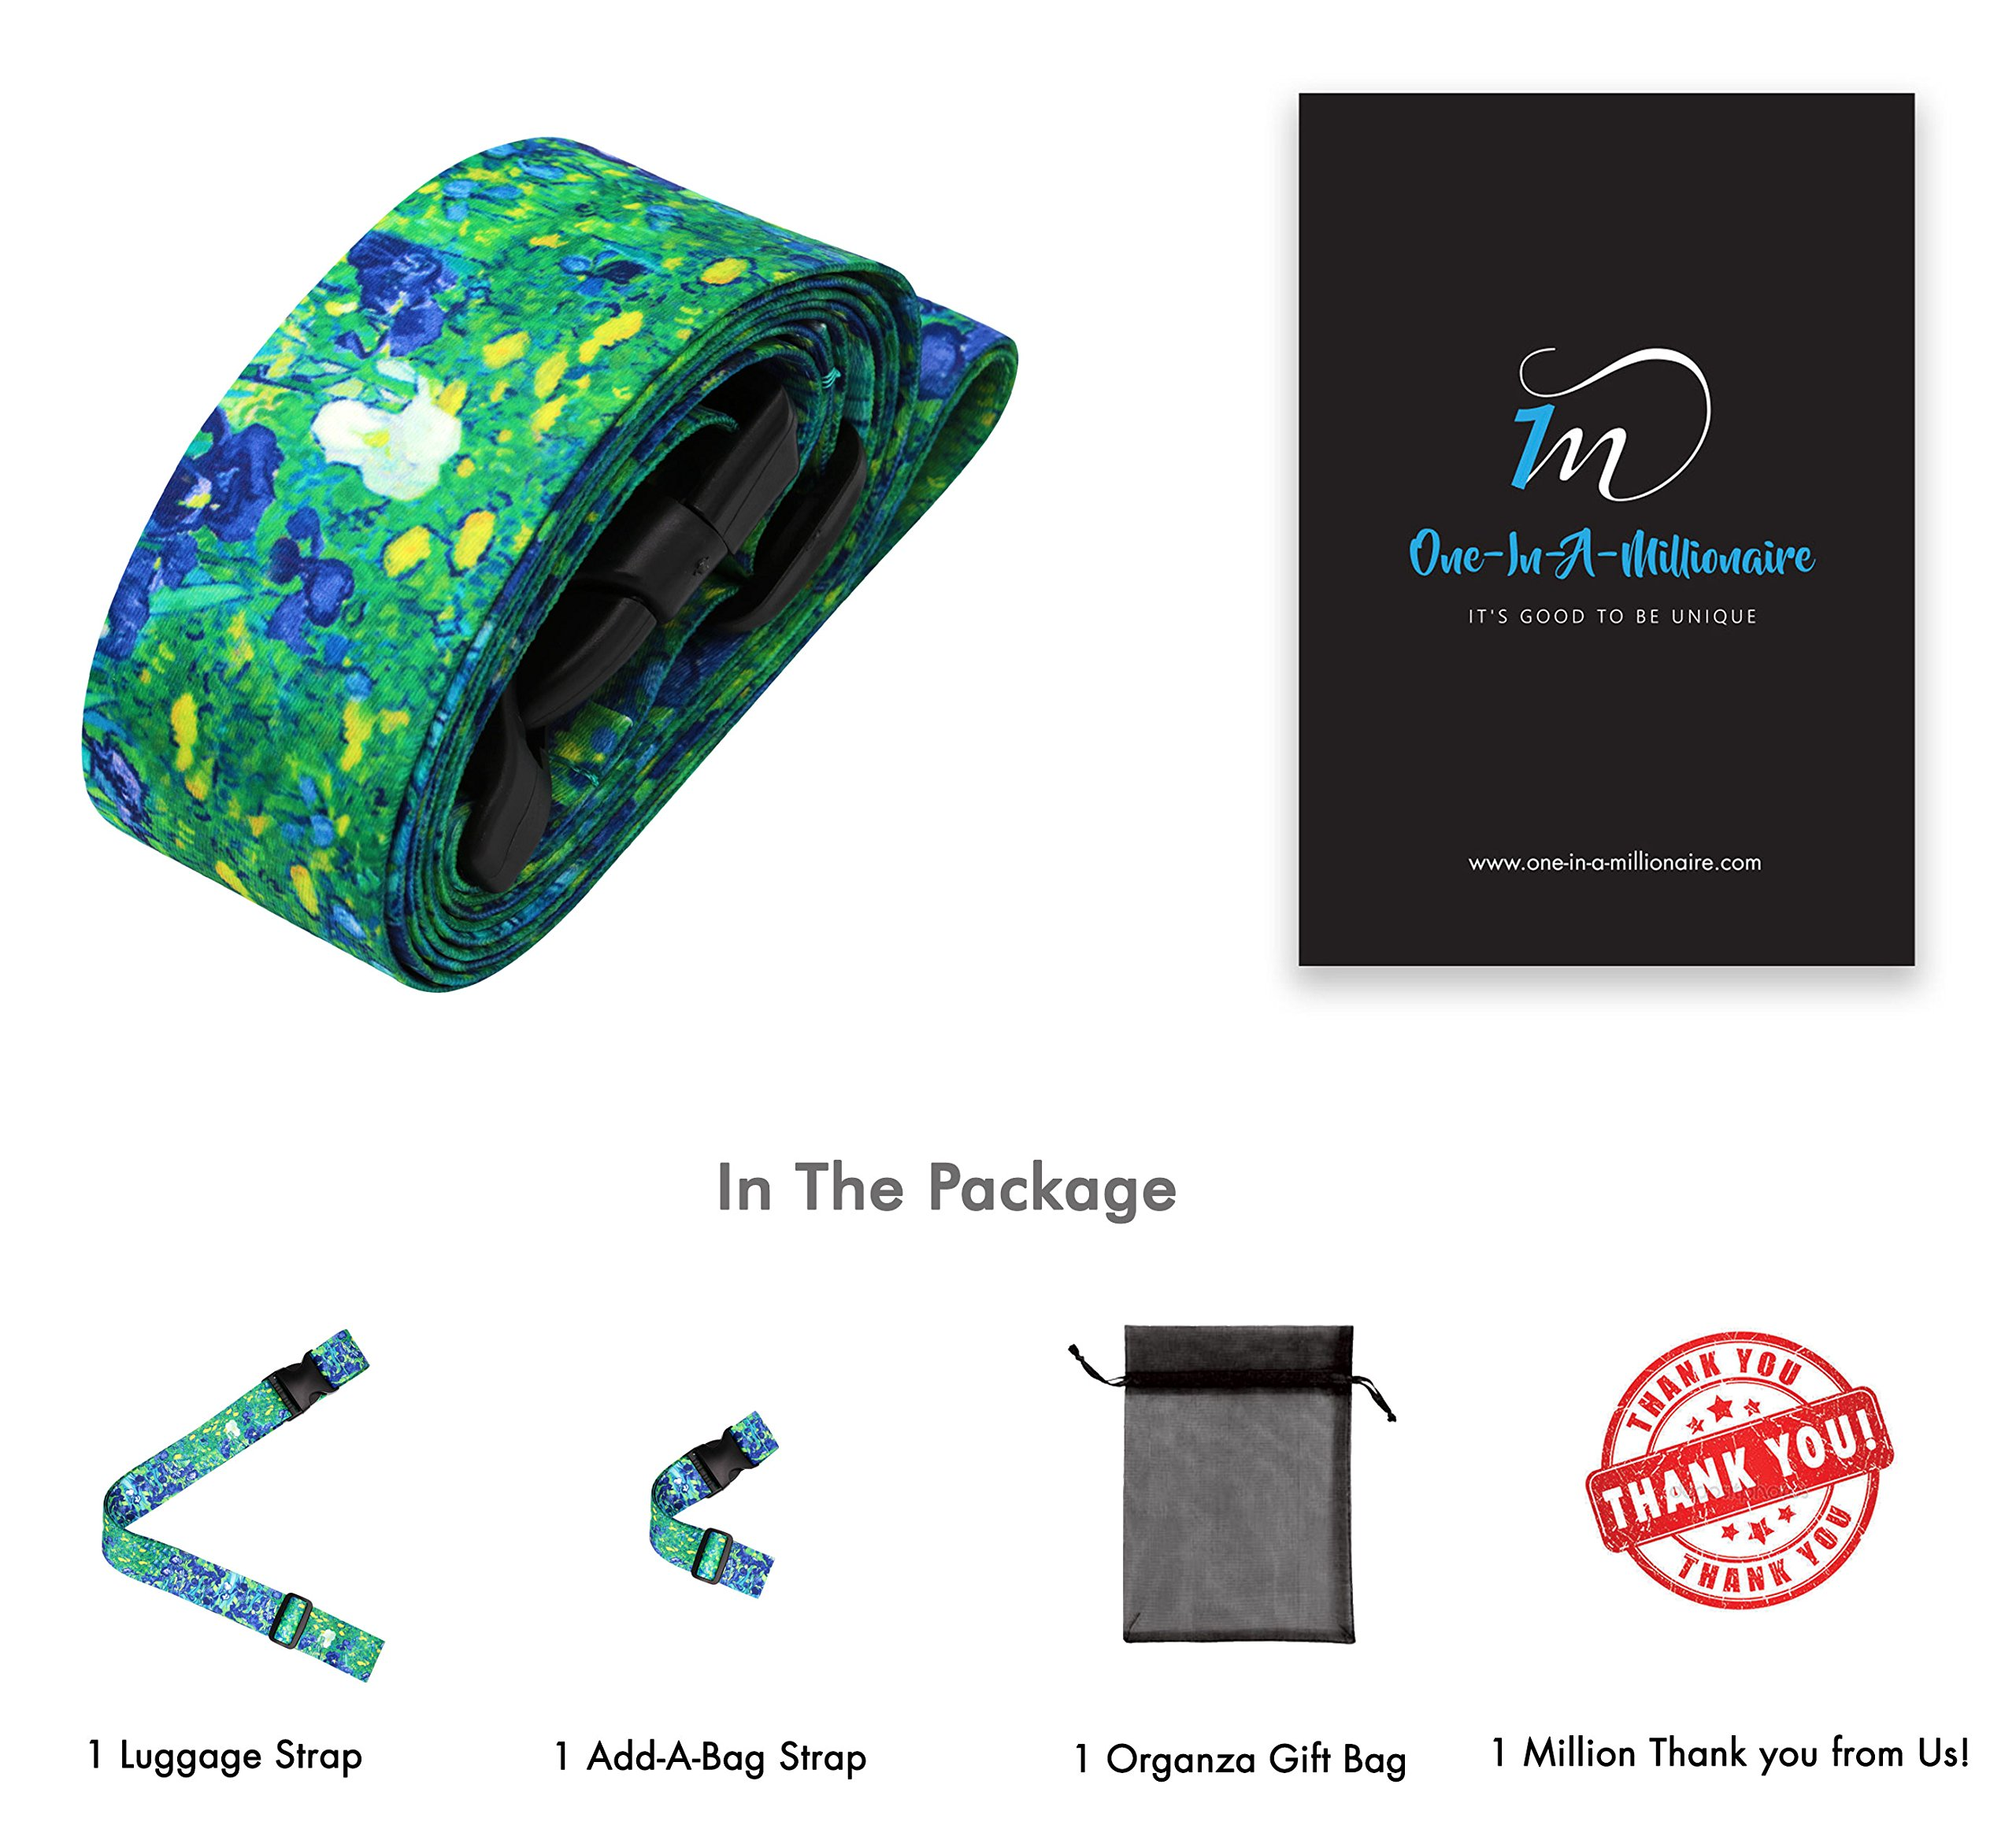 Vincent Van Gogh Irises Travel Luggage Strap Suitcase Security Belt. Heavy Duty & Adjustable. Must Have Travel Accessories. TSA Compliant. 1 Luggage Strap & 1 Add A Bag Strap. 2-Piece Set. by One In A Millionaire (Image #6)